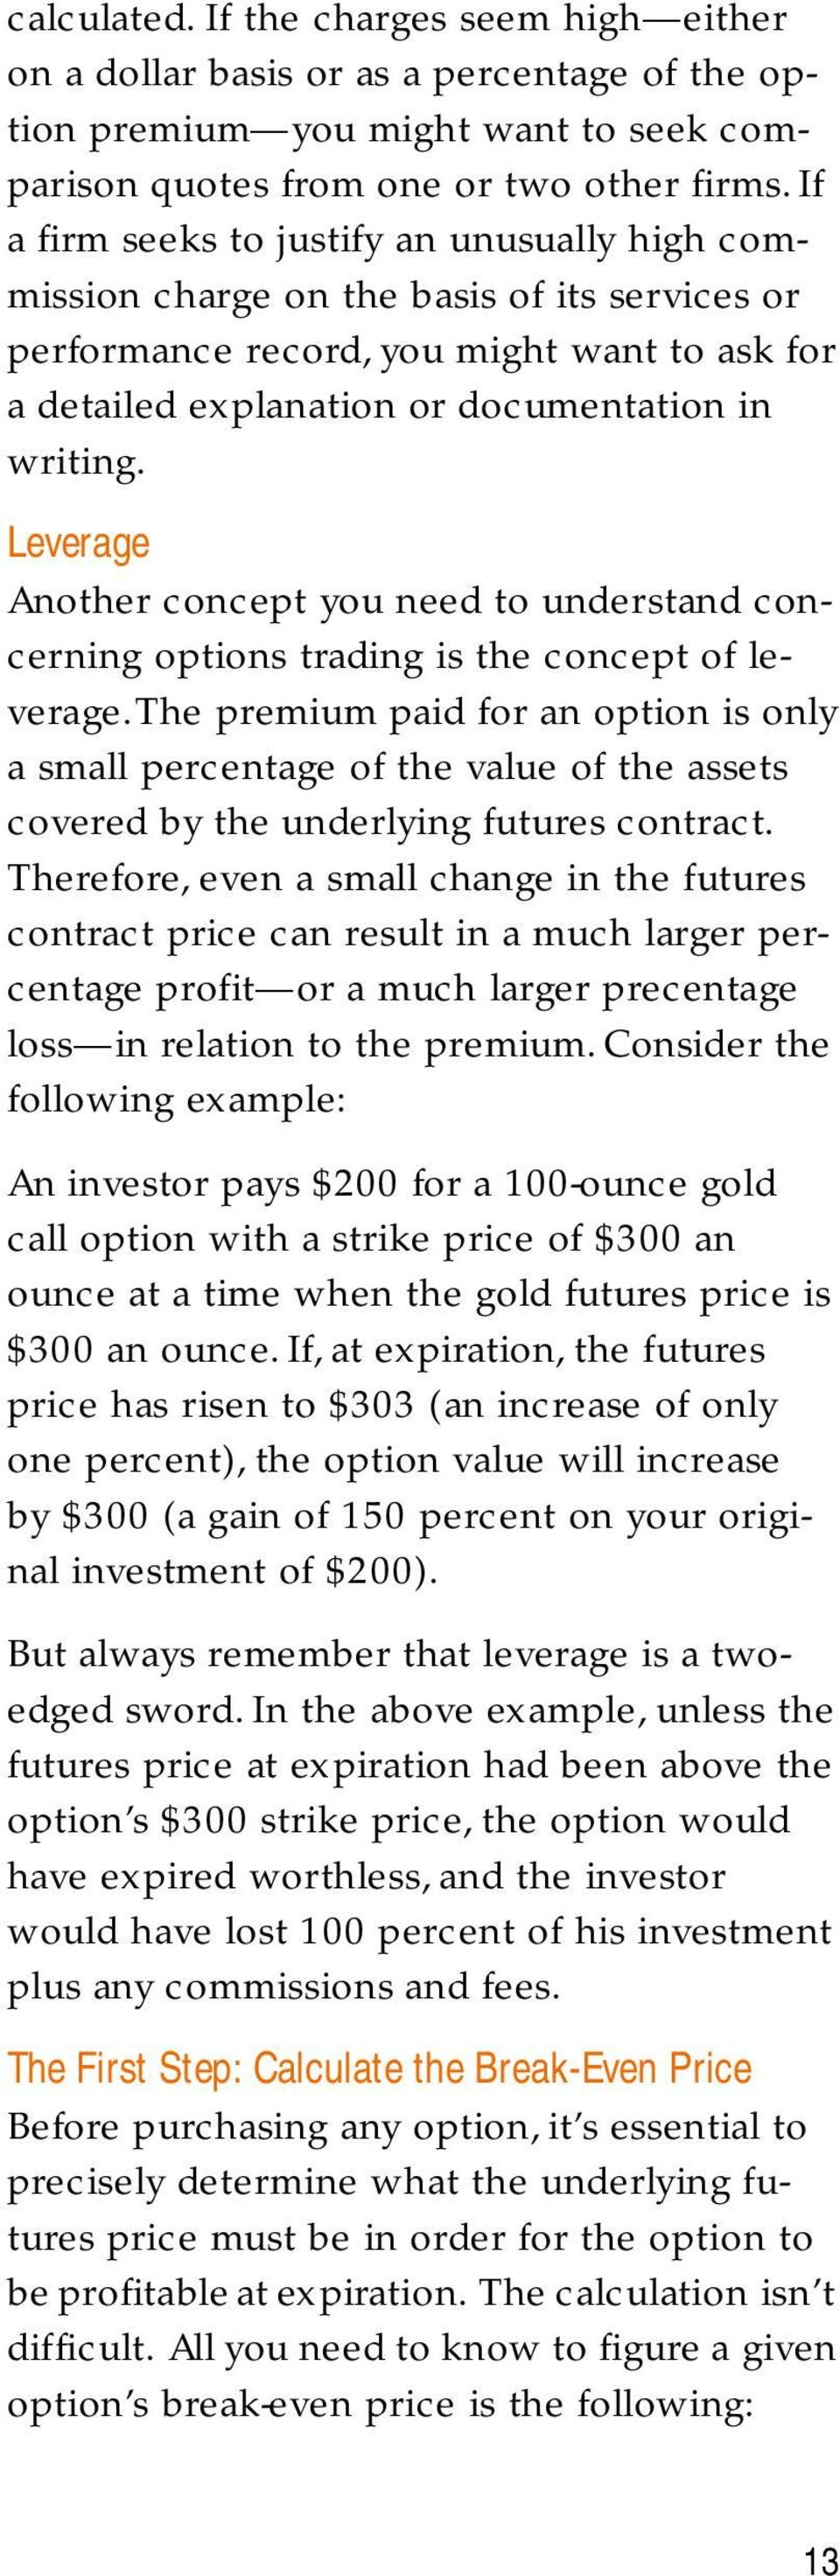 Leverage Another concept you need to understand concerning options trading is the concept of leverage.